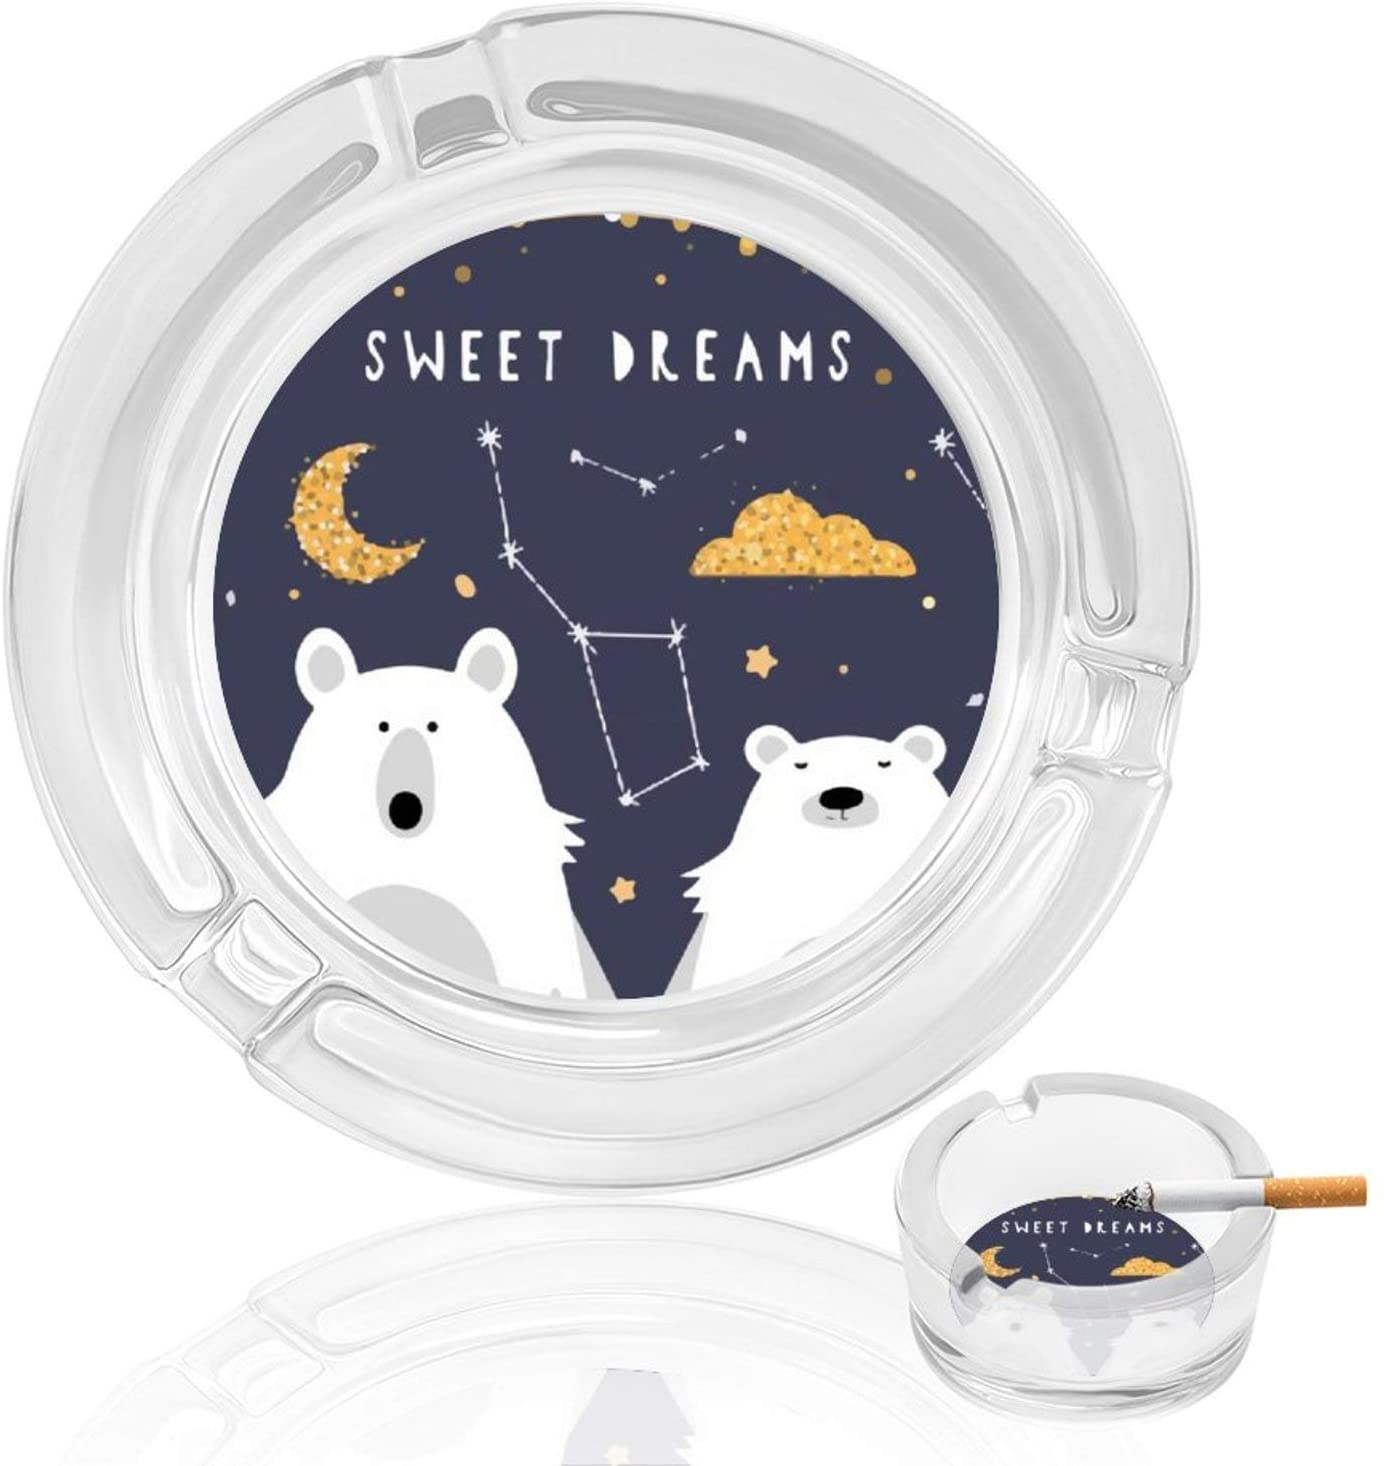 Bear Couple Polar Dreams Round Glass Ashtray Tabletop Ash Tray for Cigars Portable Clear Big Ashtrays Holder Case for Smoking for Home Indoor Outdoor Restaurant Decoration for Mens Car Patio Pool